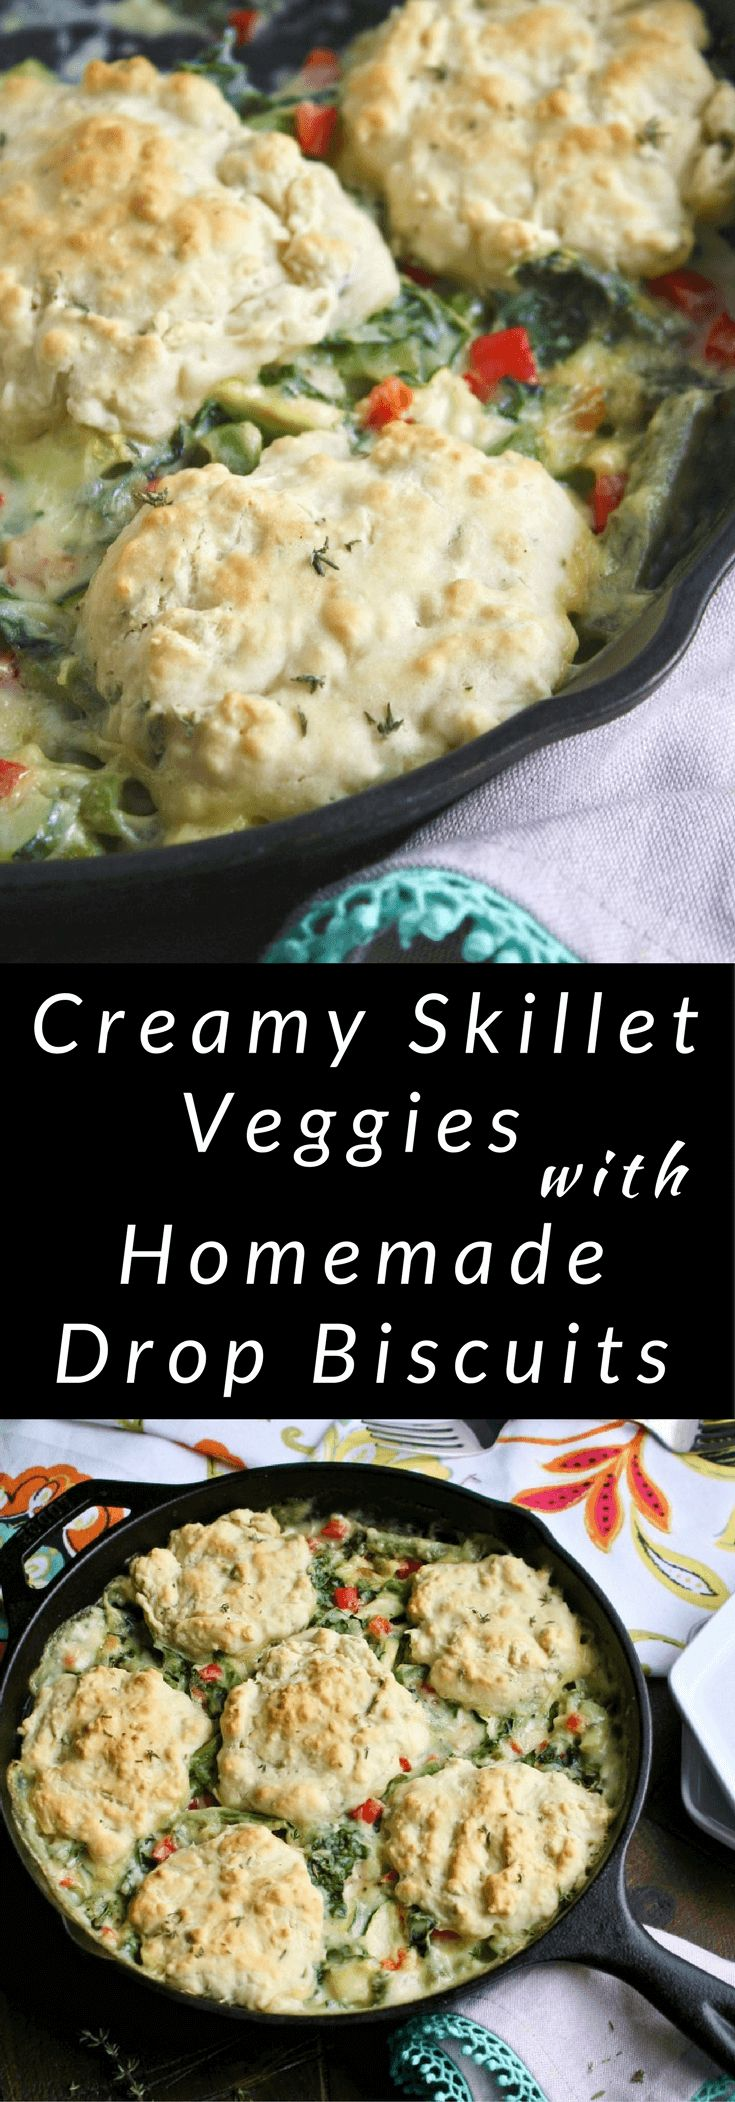 What a hearty, comforting meal! Try Creamy Skillet Veggies with Homemade Drop Biscuits!